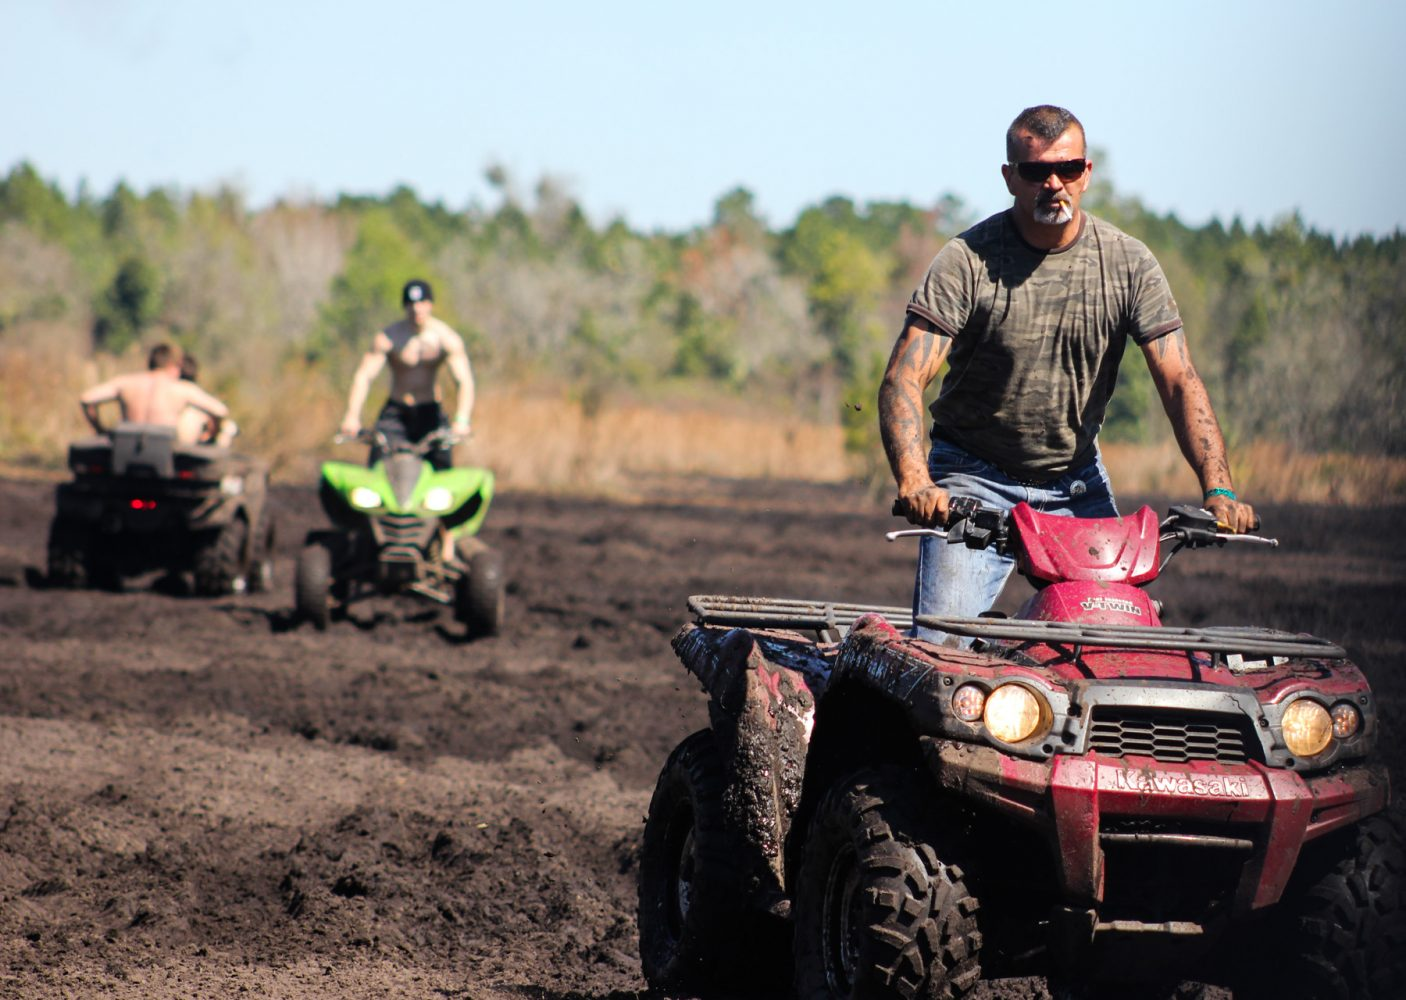 Elio Delgato rides his four-wheeler through the woods on the Hog Waller property on Sunday afternoon, March 2, 2014.